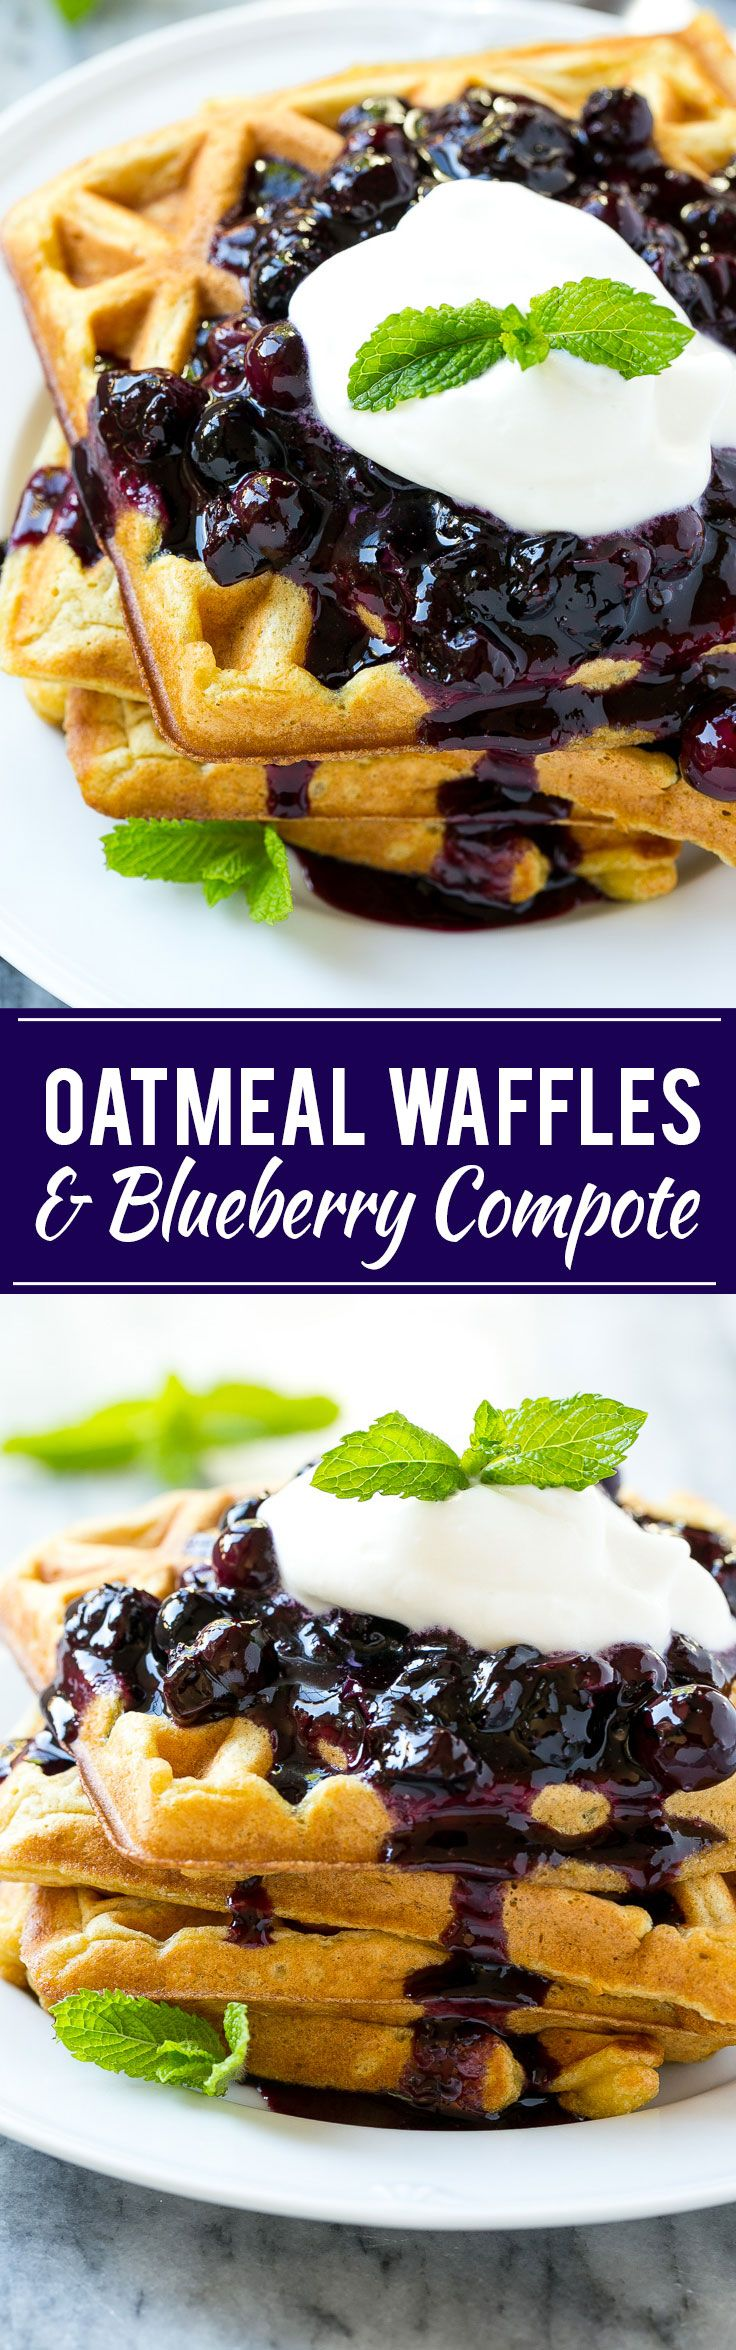 Oatmeal Waffles with Blueberry Compote